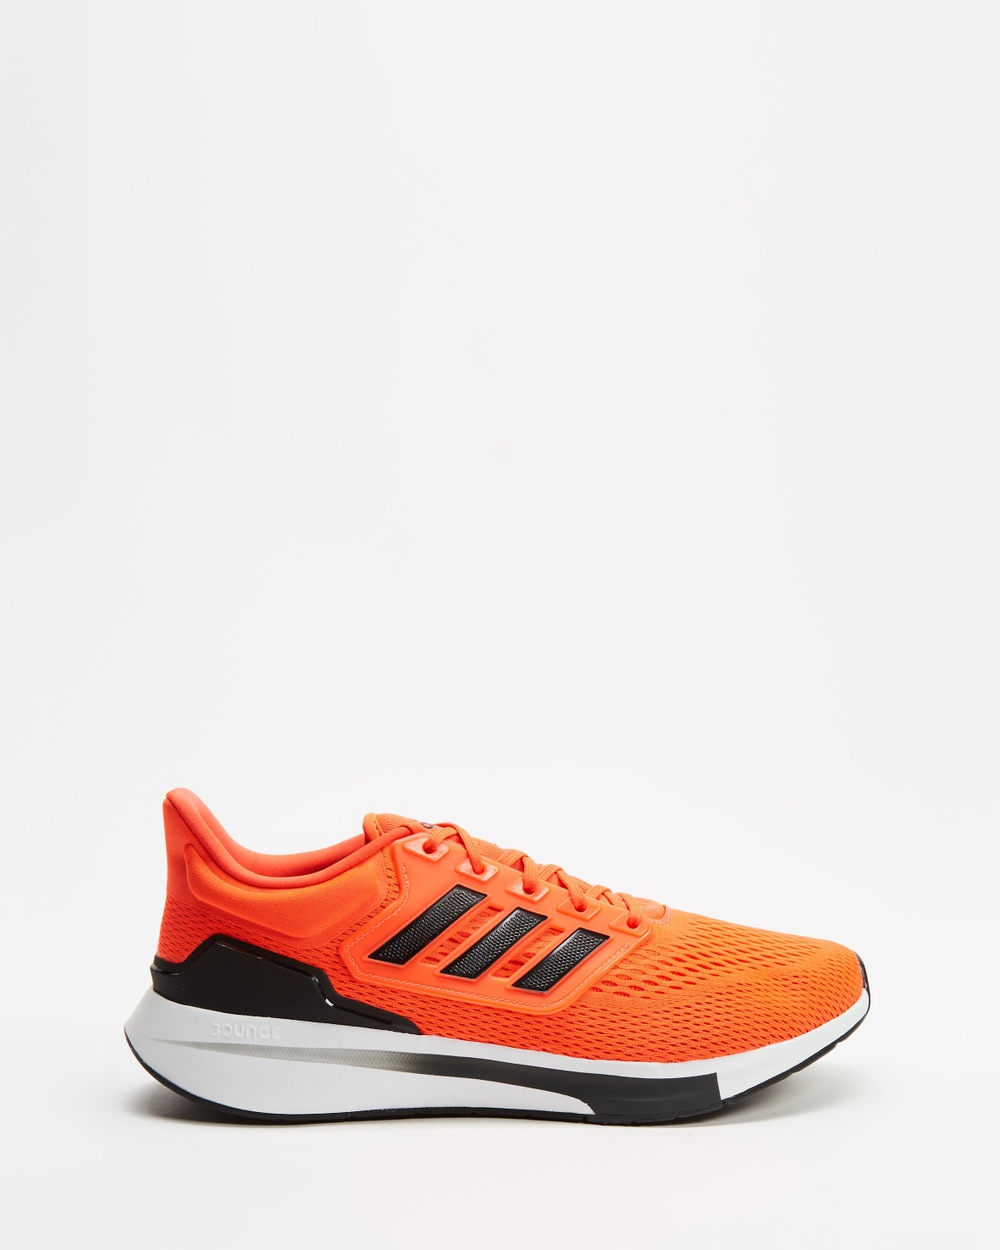 adidas Performance EQ21 Running Shoes Men's Solar Red, Core Black & Carbon